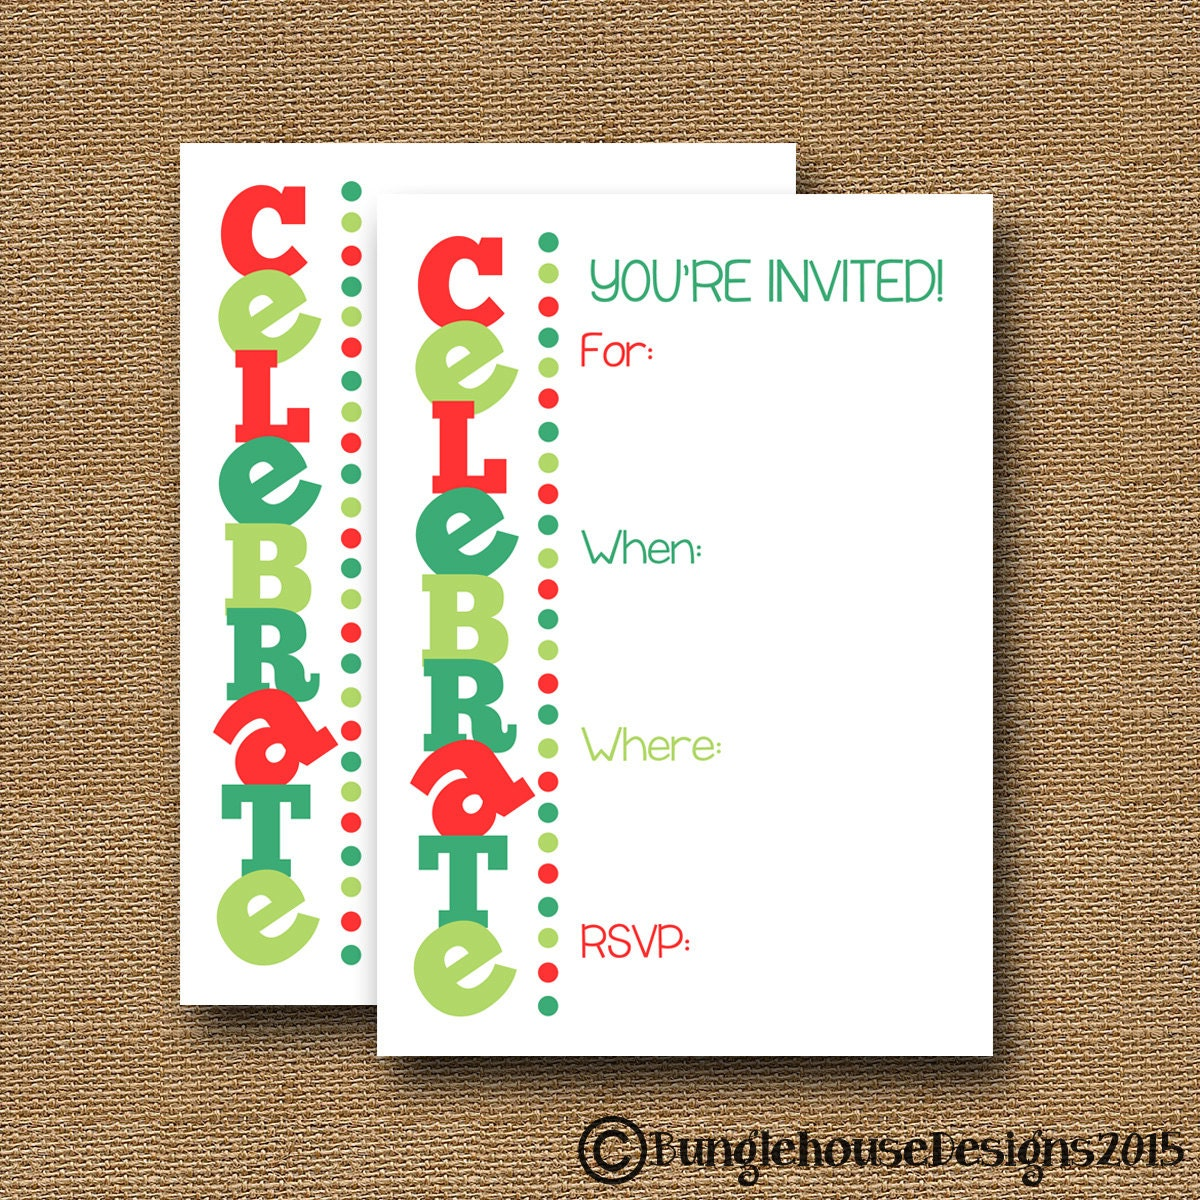 printable christmas bookmark jesus scripture bible verse fill in the blank christmas party invitation holiday write in invitation diy printable celebrate christmas generic party invite